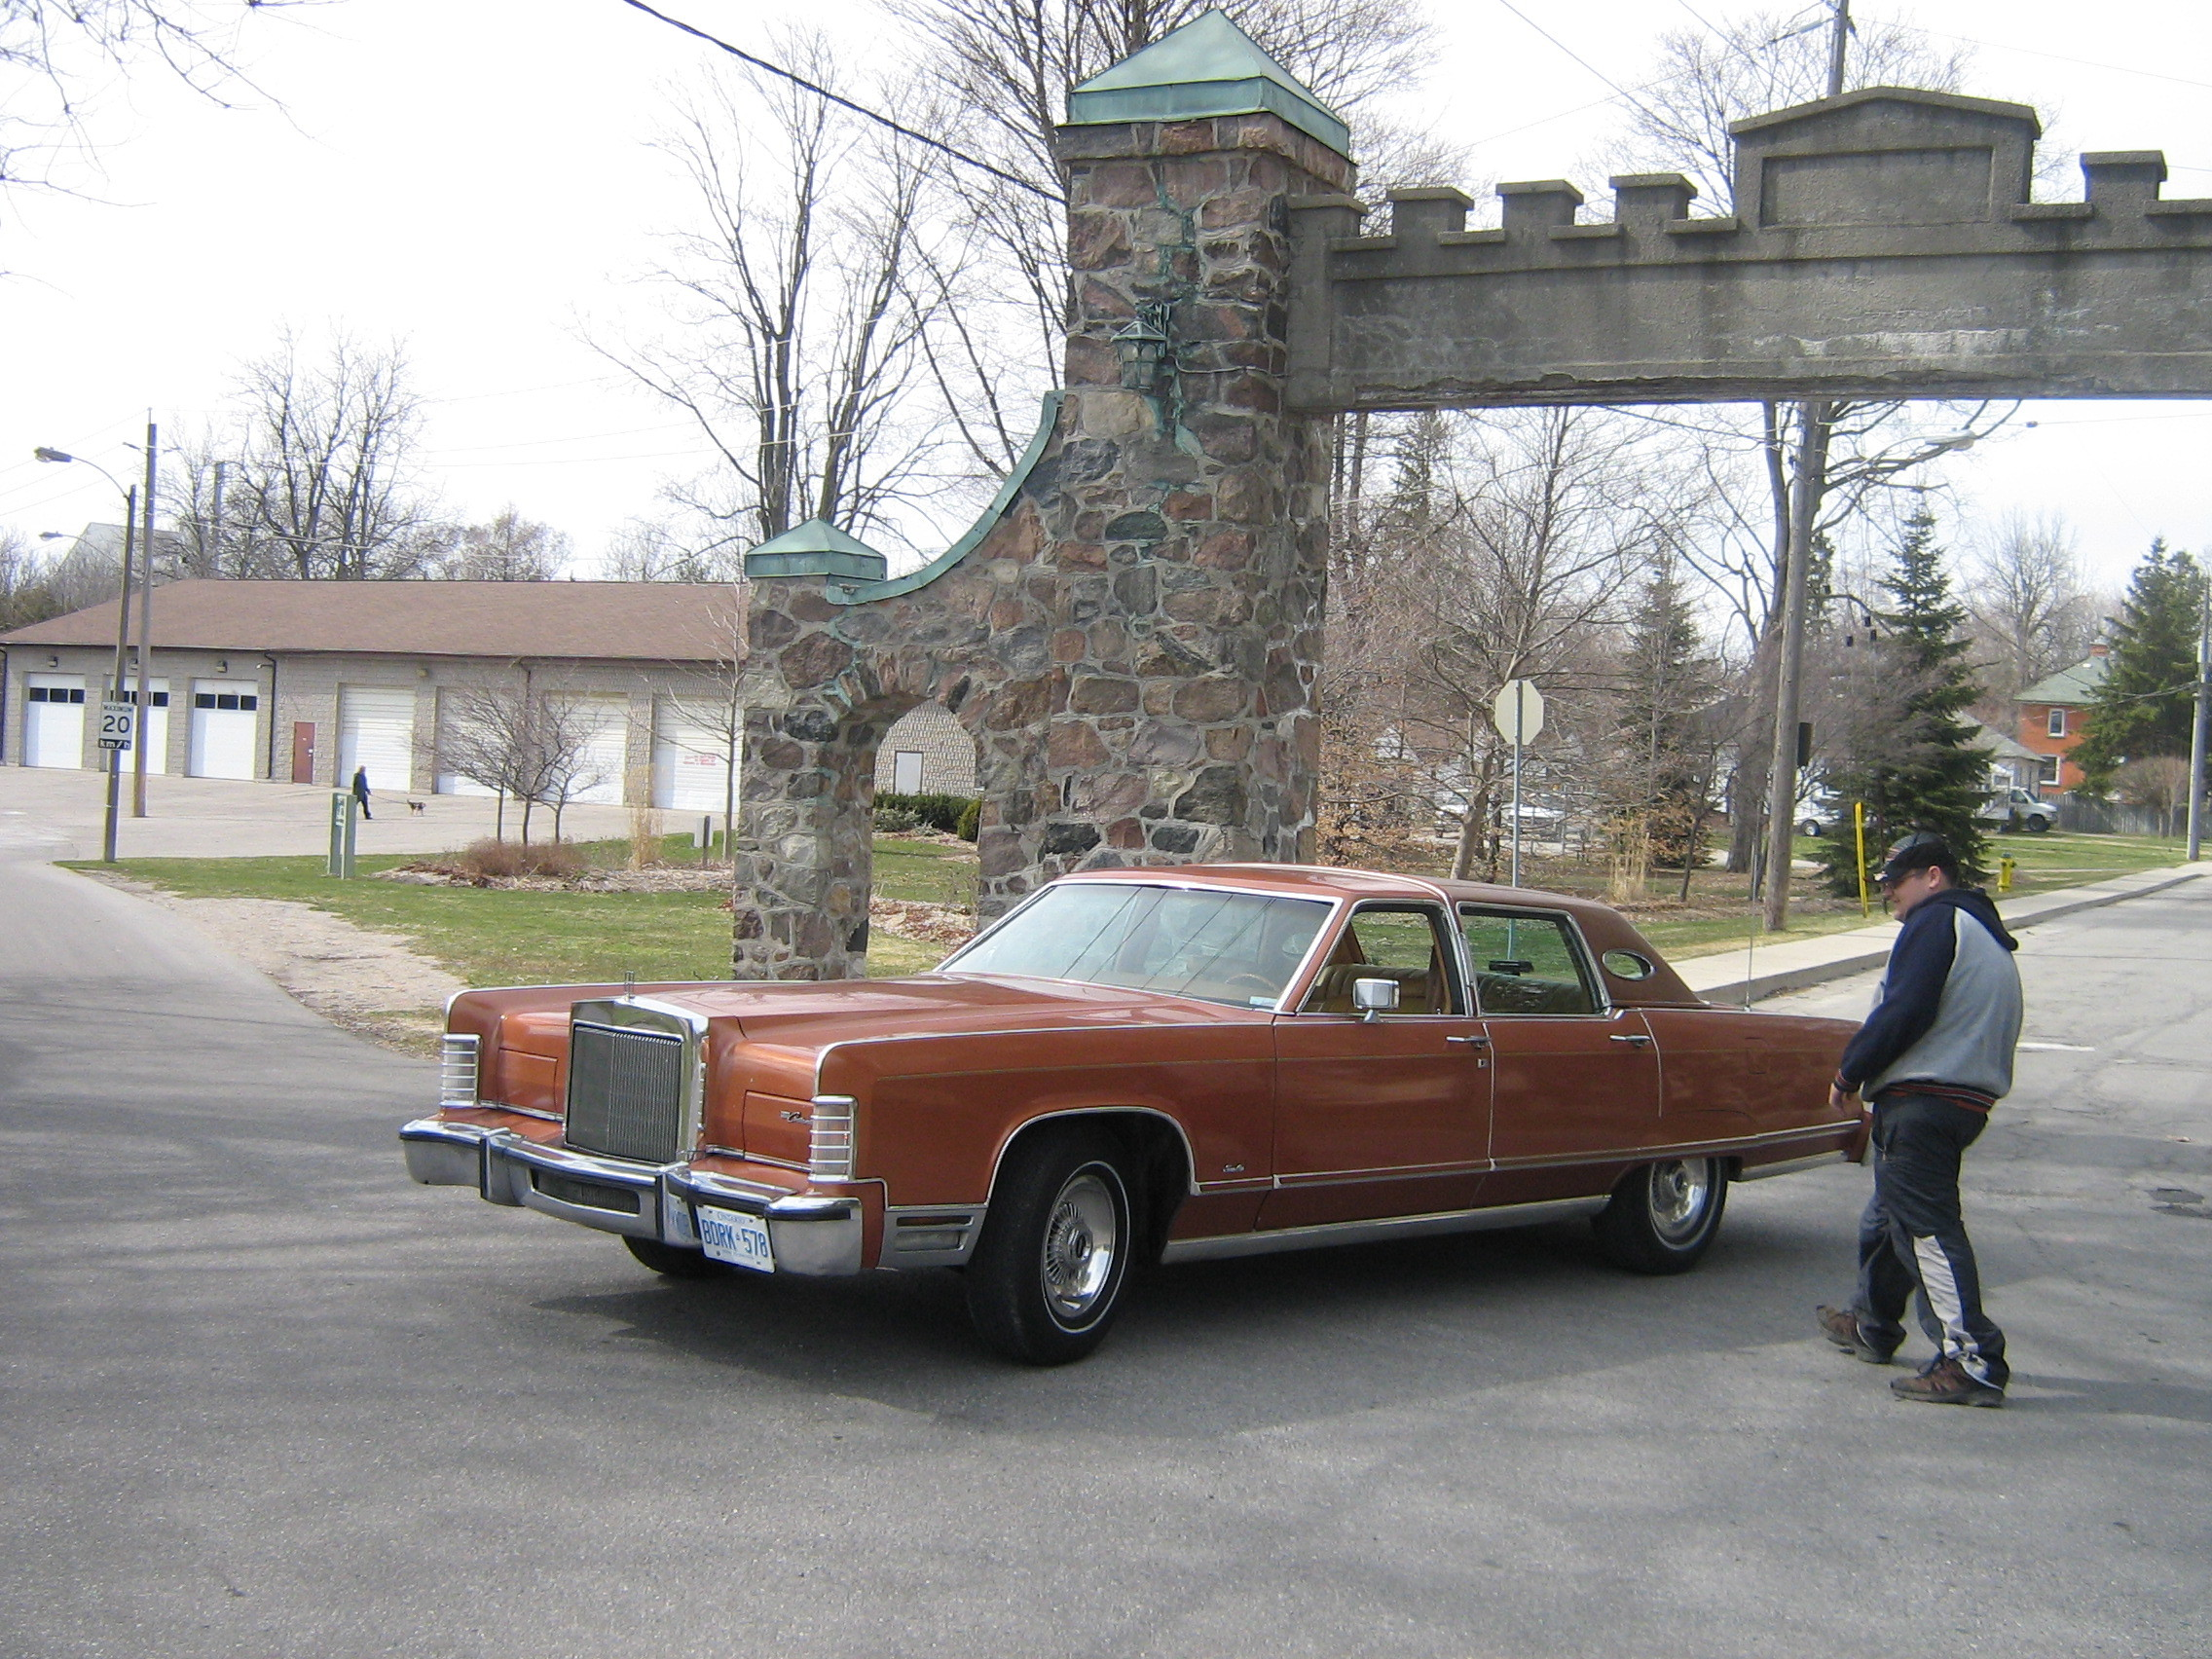 One_Fast_Omni 1977 Lincoln Continental 12919918